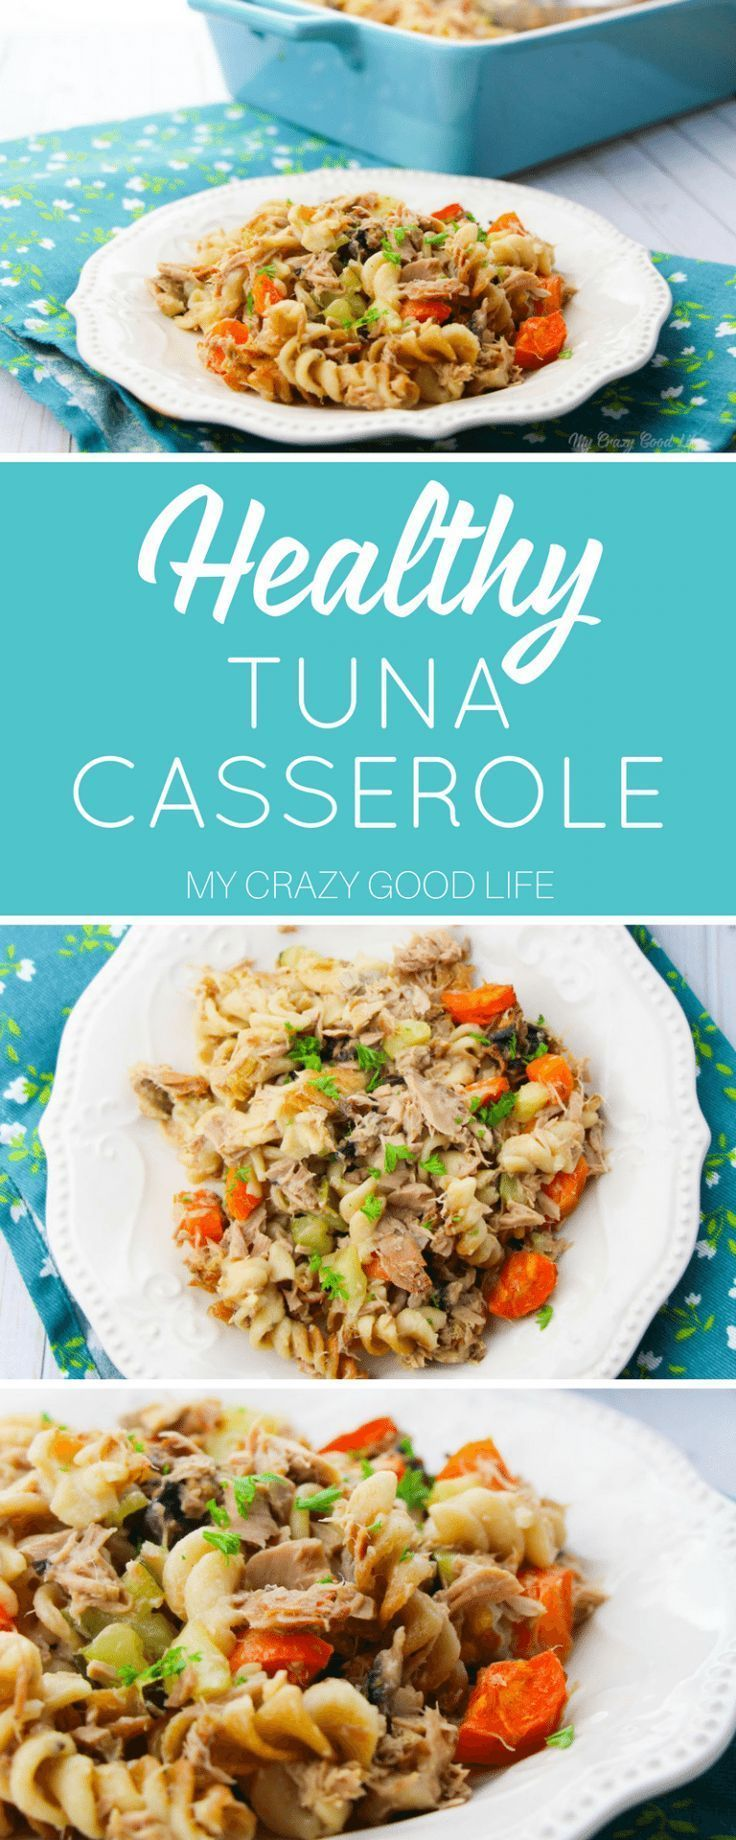 this healthy tuna casserole contains homemade cream of